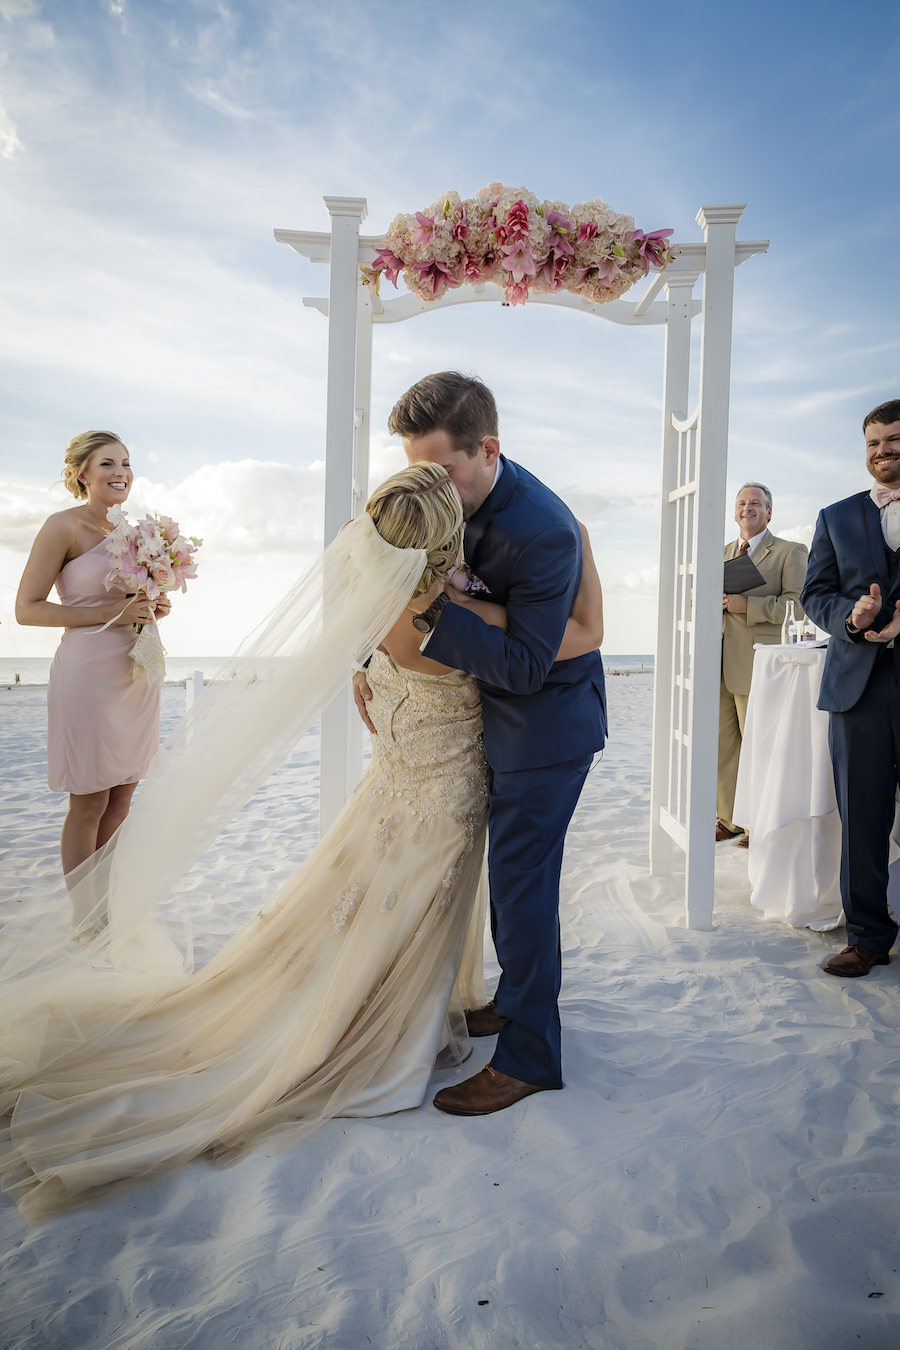 Outdoor, Tampa Bay Beach Waterfront Bride and Groom First Kiss Wedding Portrait     Outdoor Waterfront Hotel Wedding Venue Hilton Clearwater Beach